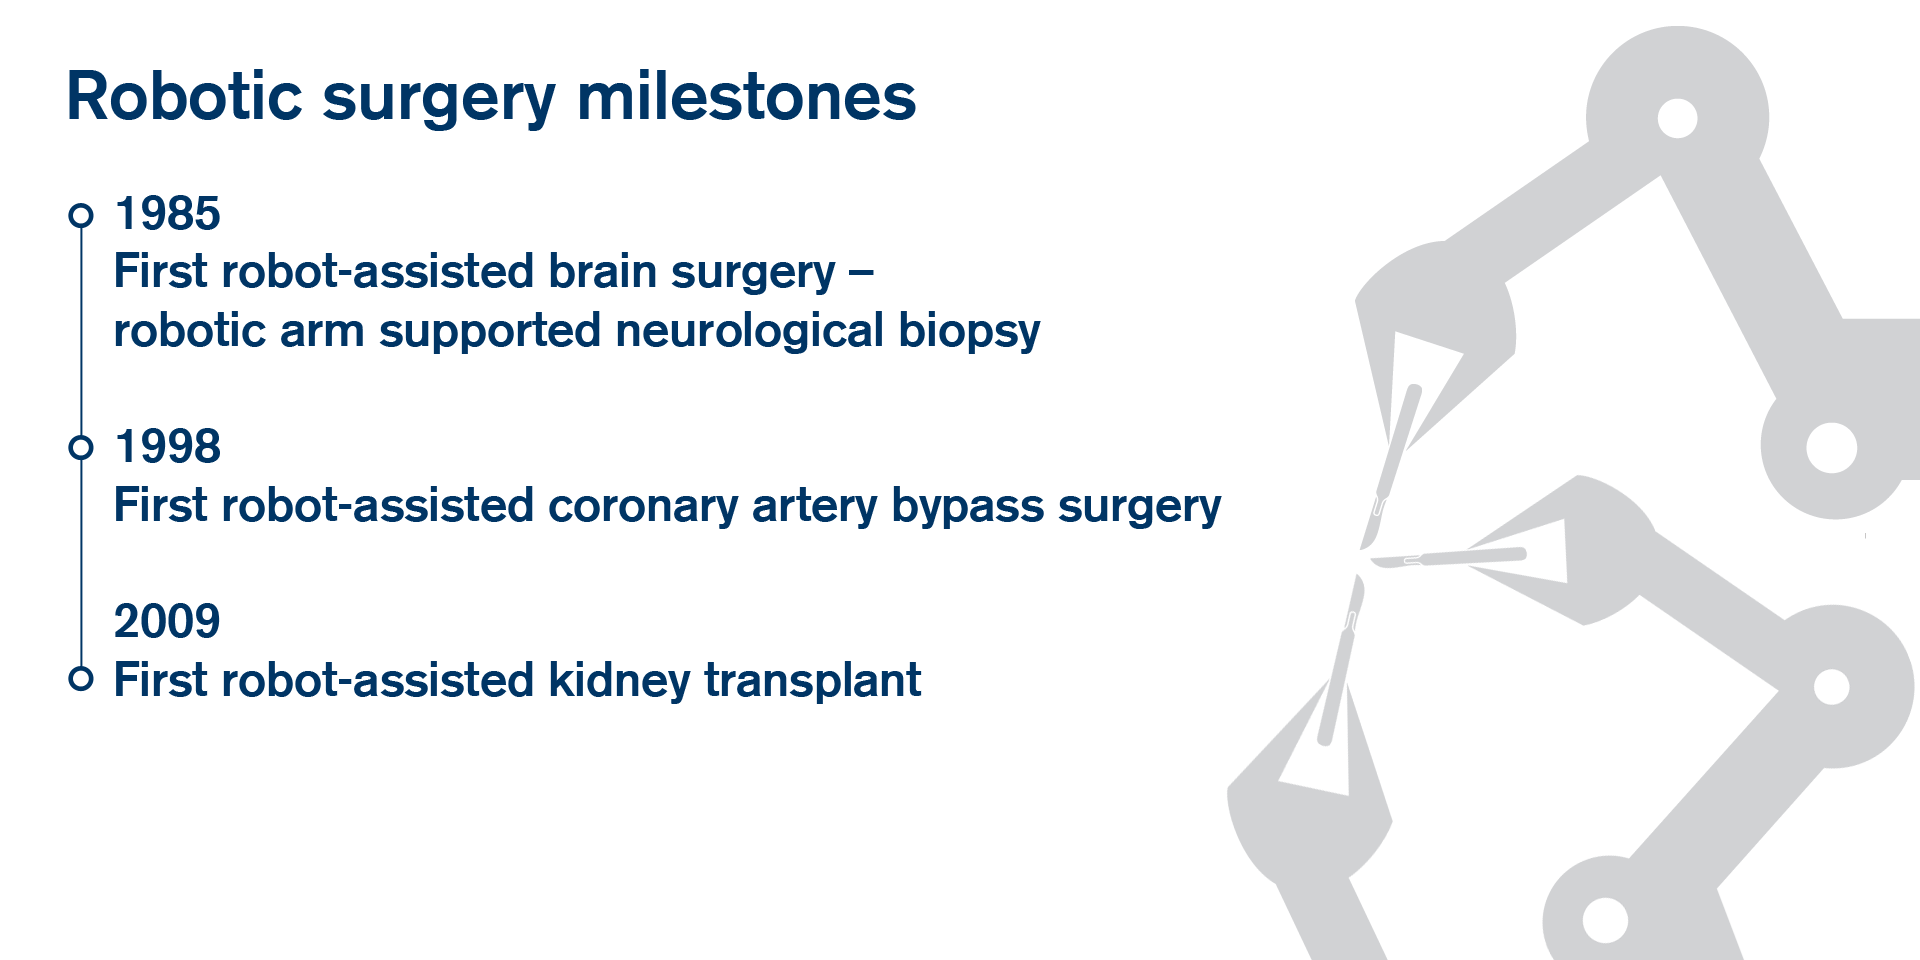 Robotic surgery milestones